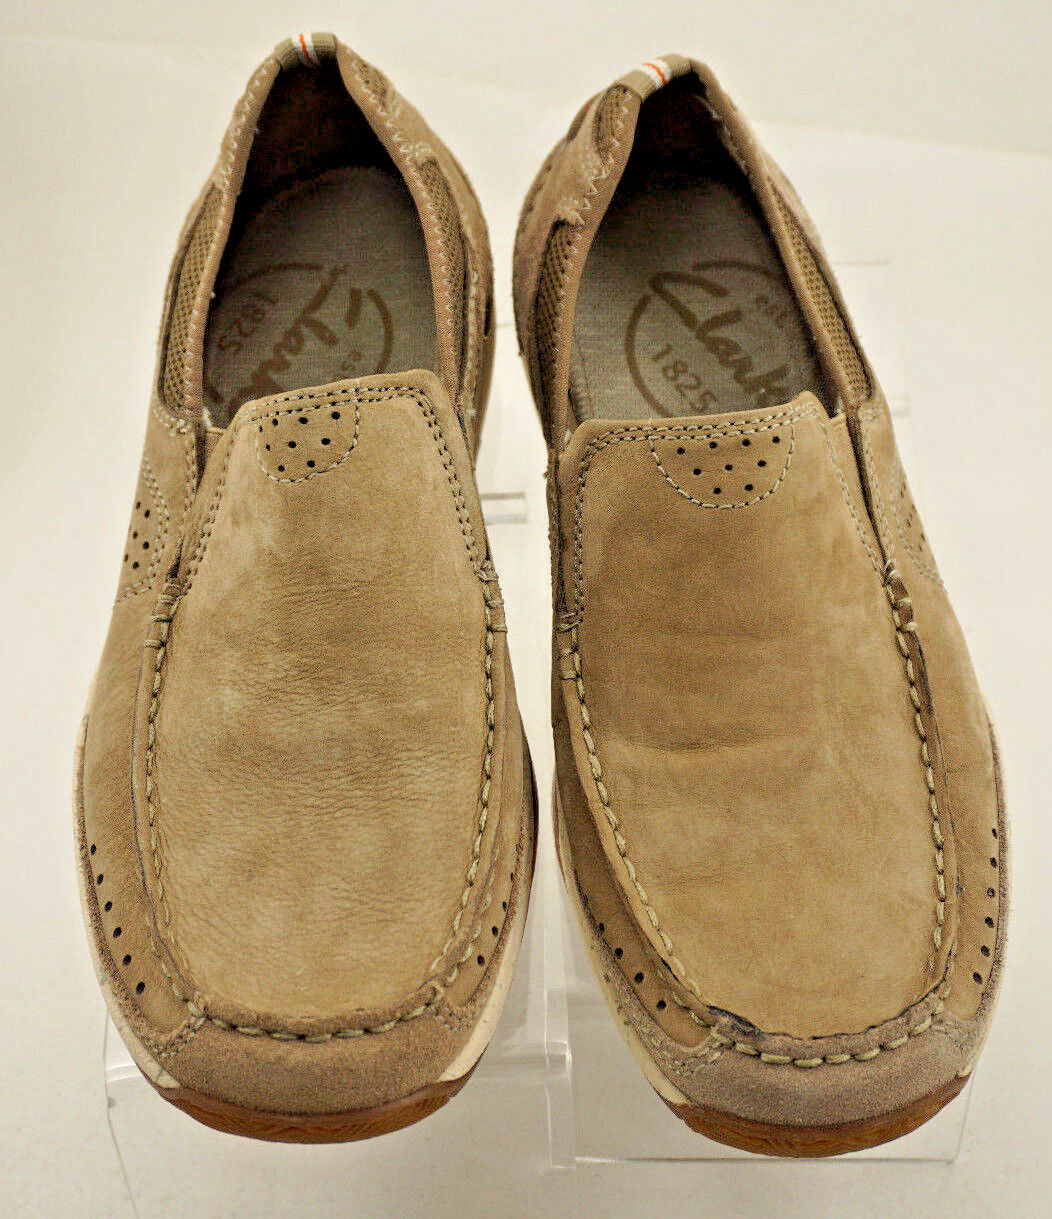 Mismatched- Clarks Walking Vestal  Men's Loafers Walking Clarks Shoes R-7 L-7.5 Leather Beige 85facb